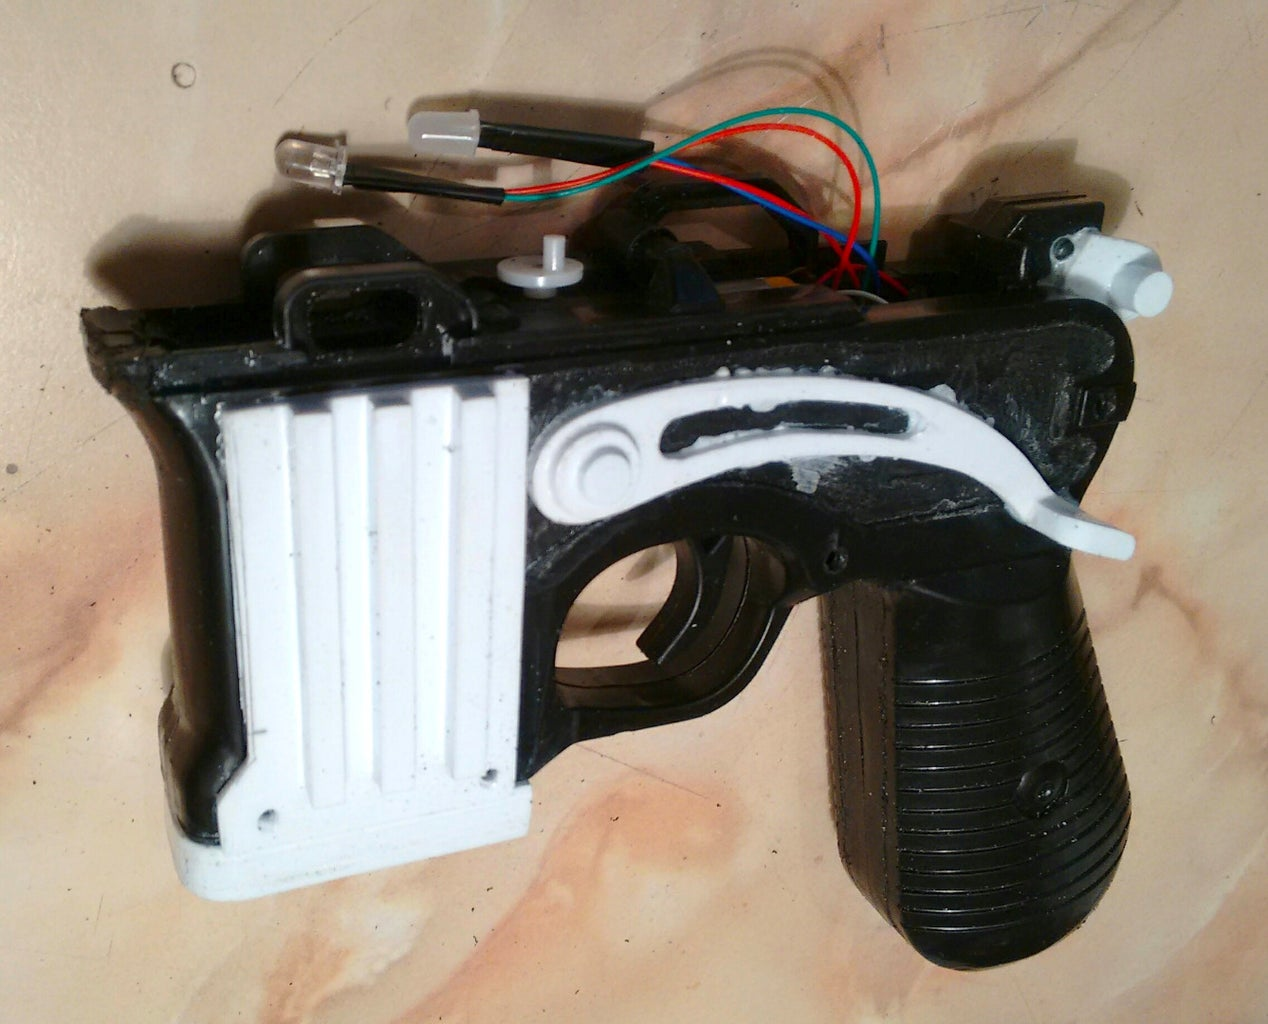 Re-assemble the Main Body, Attach the Parts, and Extend Wiring